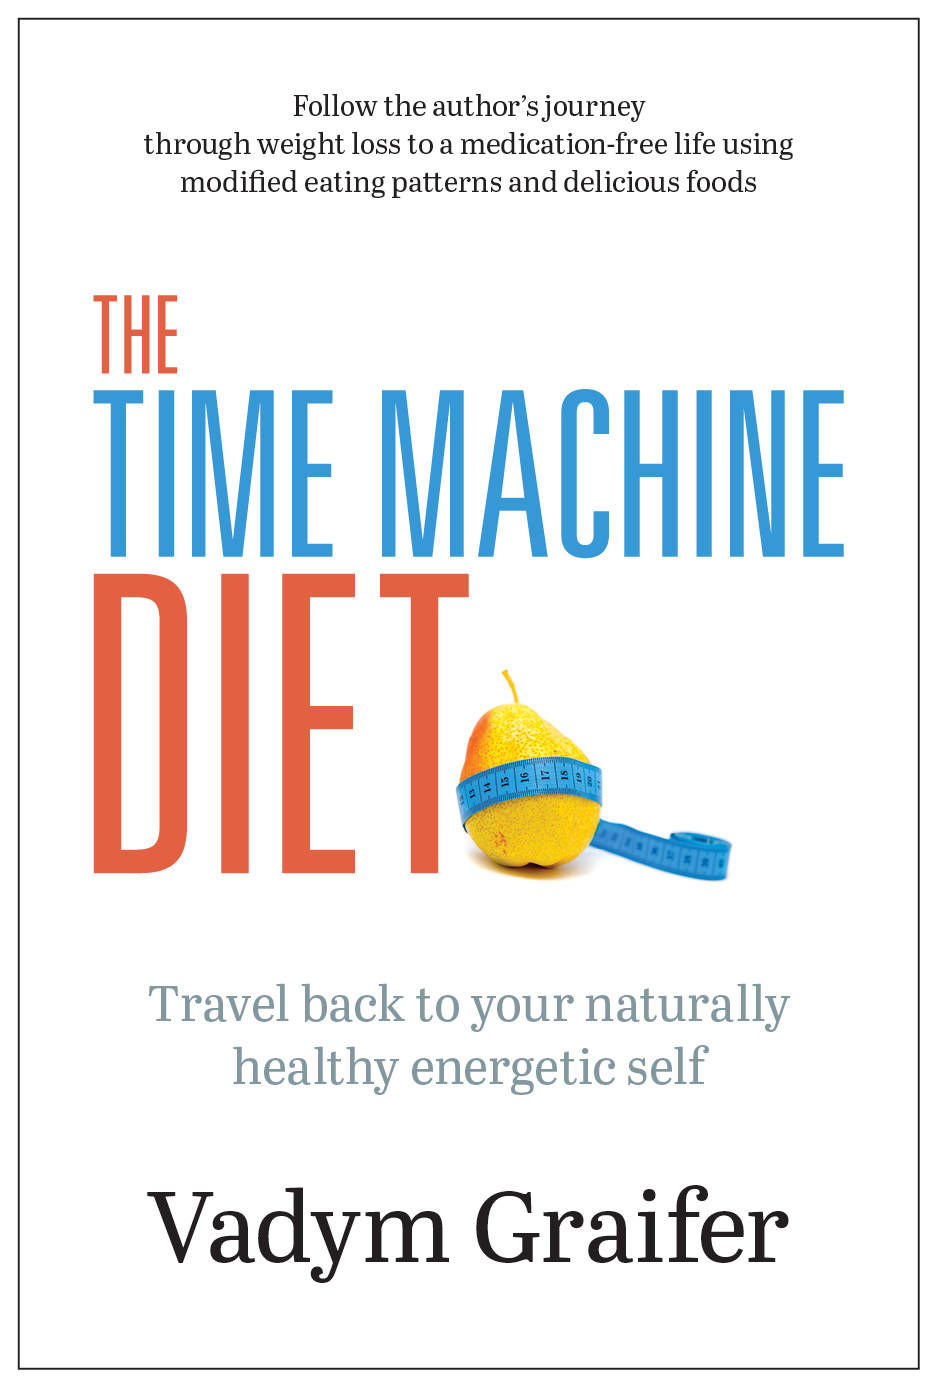 The Time Machine Diet Book